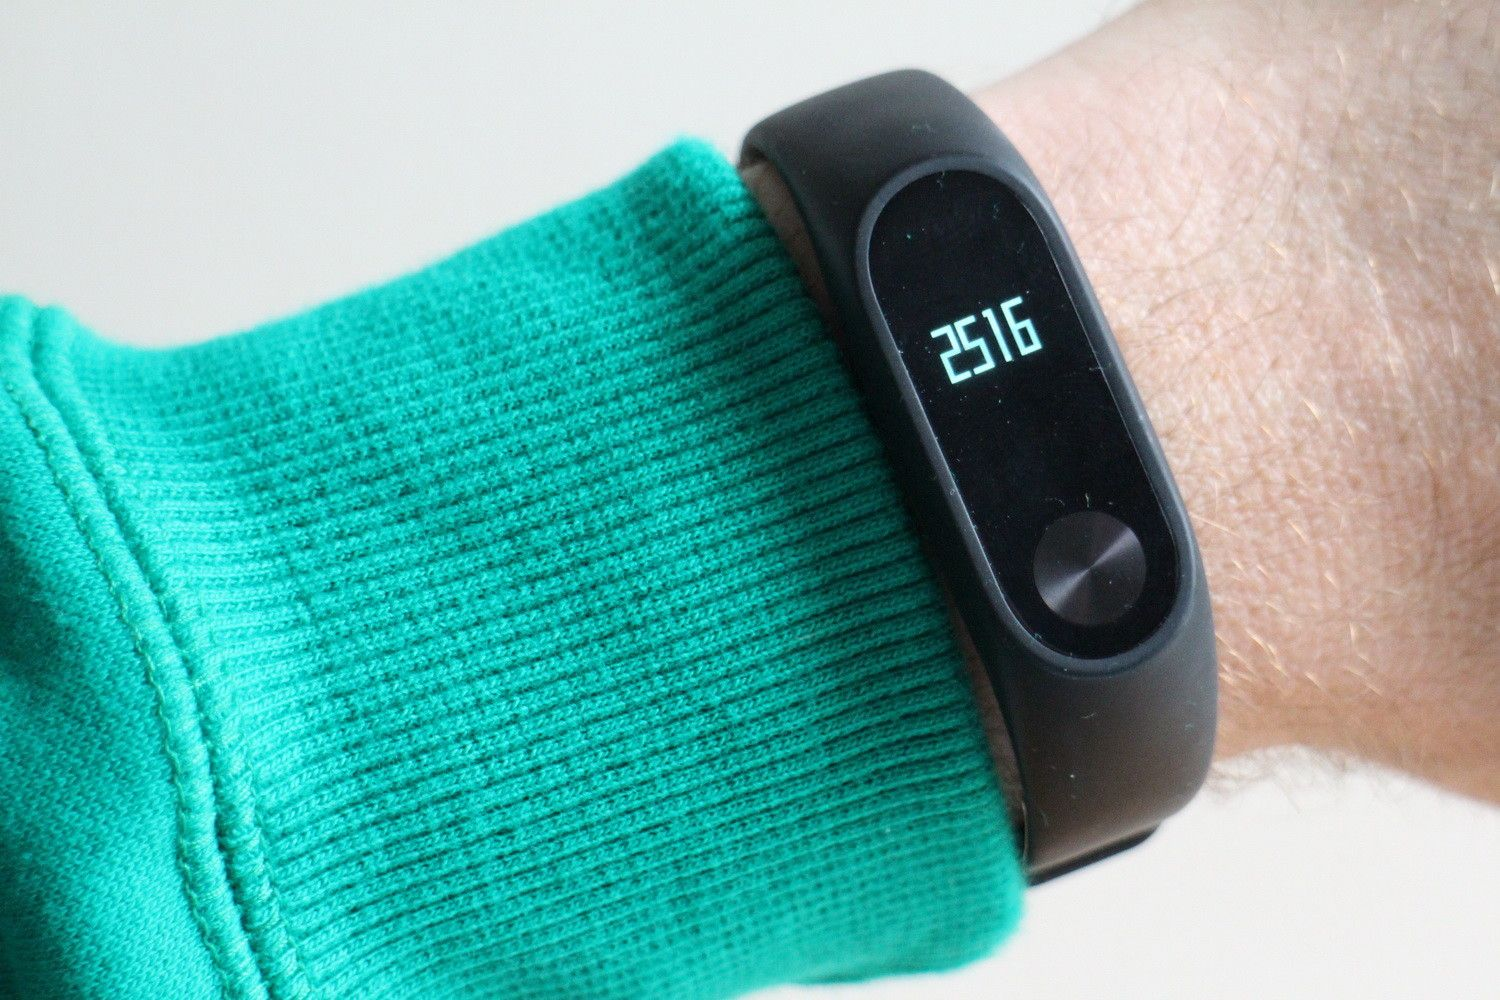 Xiaomi's Mi Band 2 is the perfect step and sleep counter